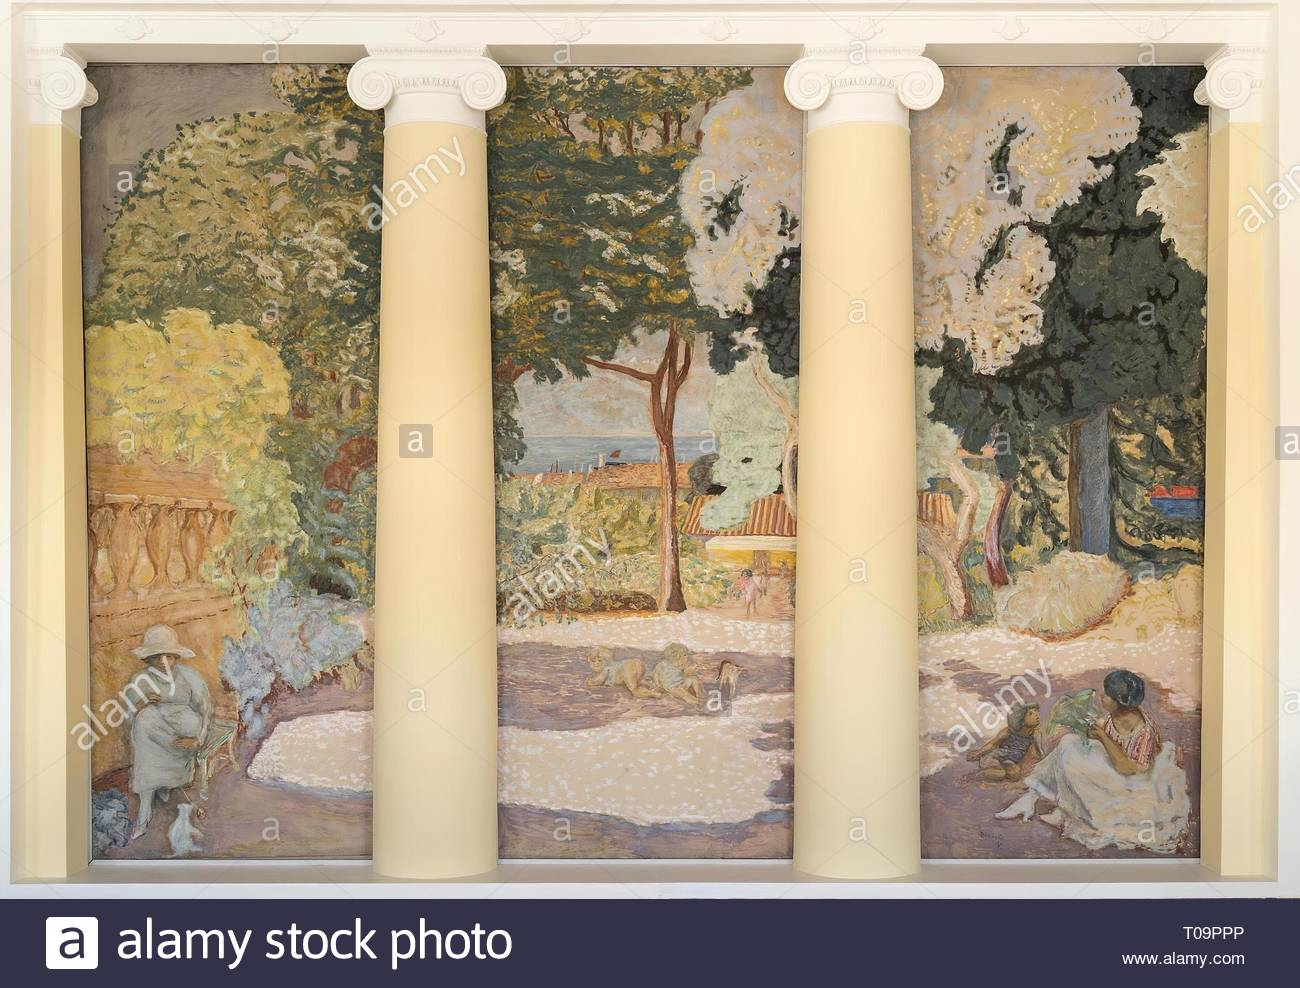 'The Mediterranean. Triptych (central panel)'. France, 1911. Dimensions: 407x152 cm. Museum: State Hermitage, St. Petersburg. Author: PIERRE BONNARD. - Stock Image